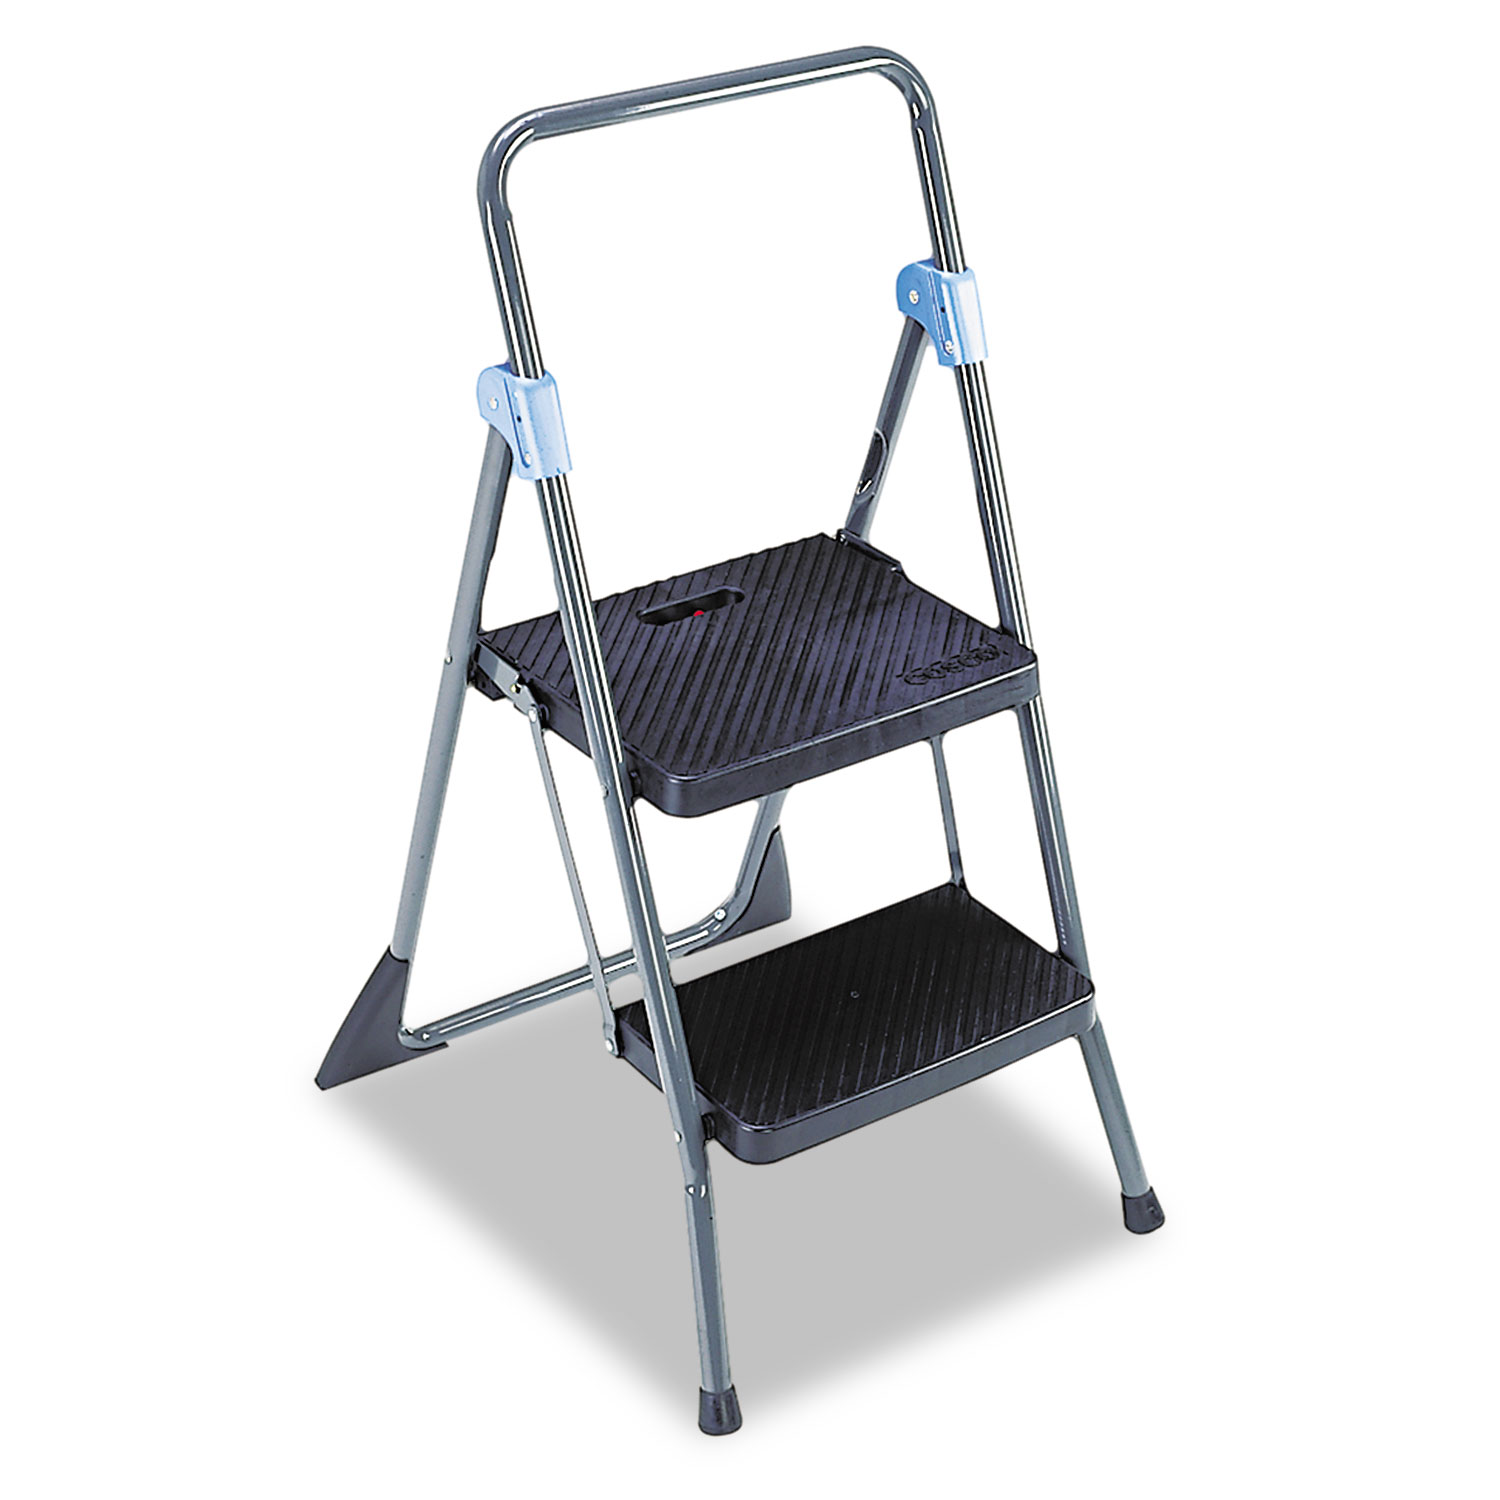 Magnificent Commercial 2 Step Folding Stool 300 Lb Capacity 20 5W X 24 75D X 39 5H Gray Inzonedesignstudio Interior Chair Design Inzonedesignstudiocom